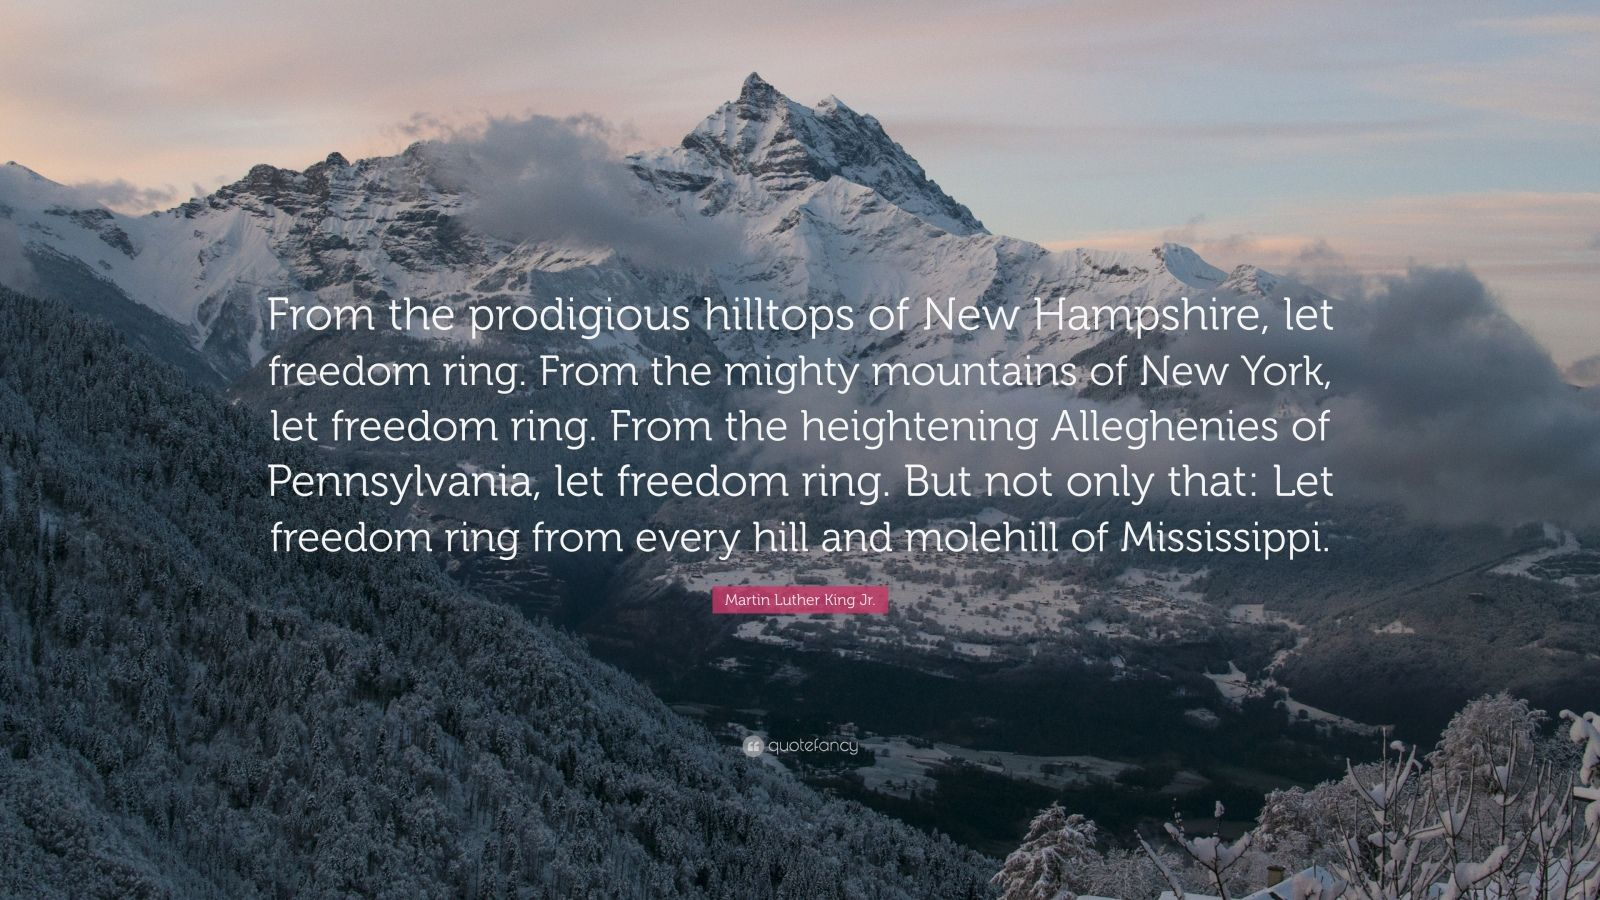 "Martin Luther King Jr. Quote: ""From the prodigious hilltops of New Hampshire, let freedom ring. From the mighty mountains of New York, let freedom ring. From the heightening Alleghenies of Pennsylvania, let freedom ring. But not only that: Let freedom ring from every hill and molehill of Mississippi."""